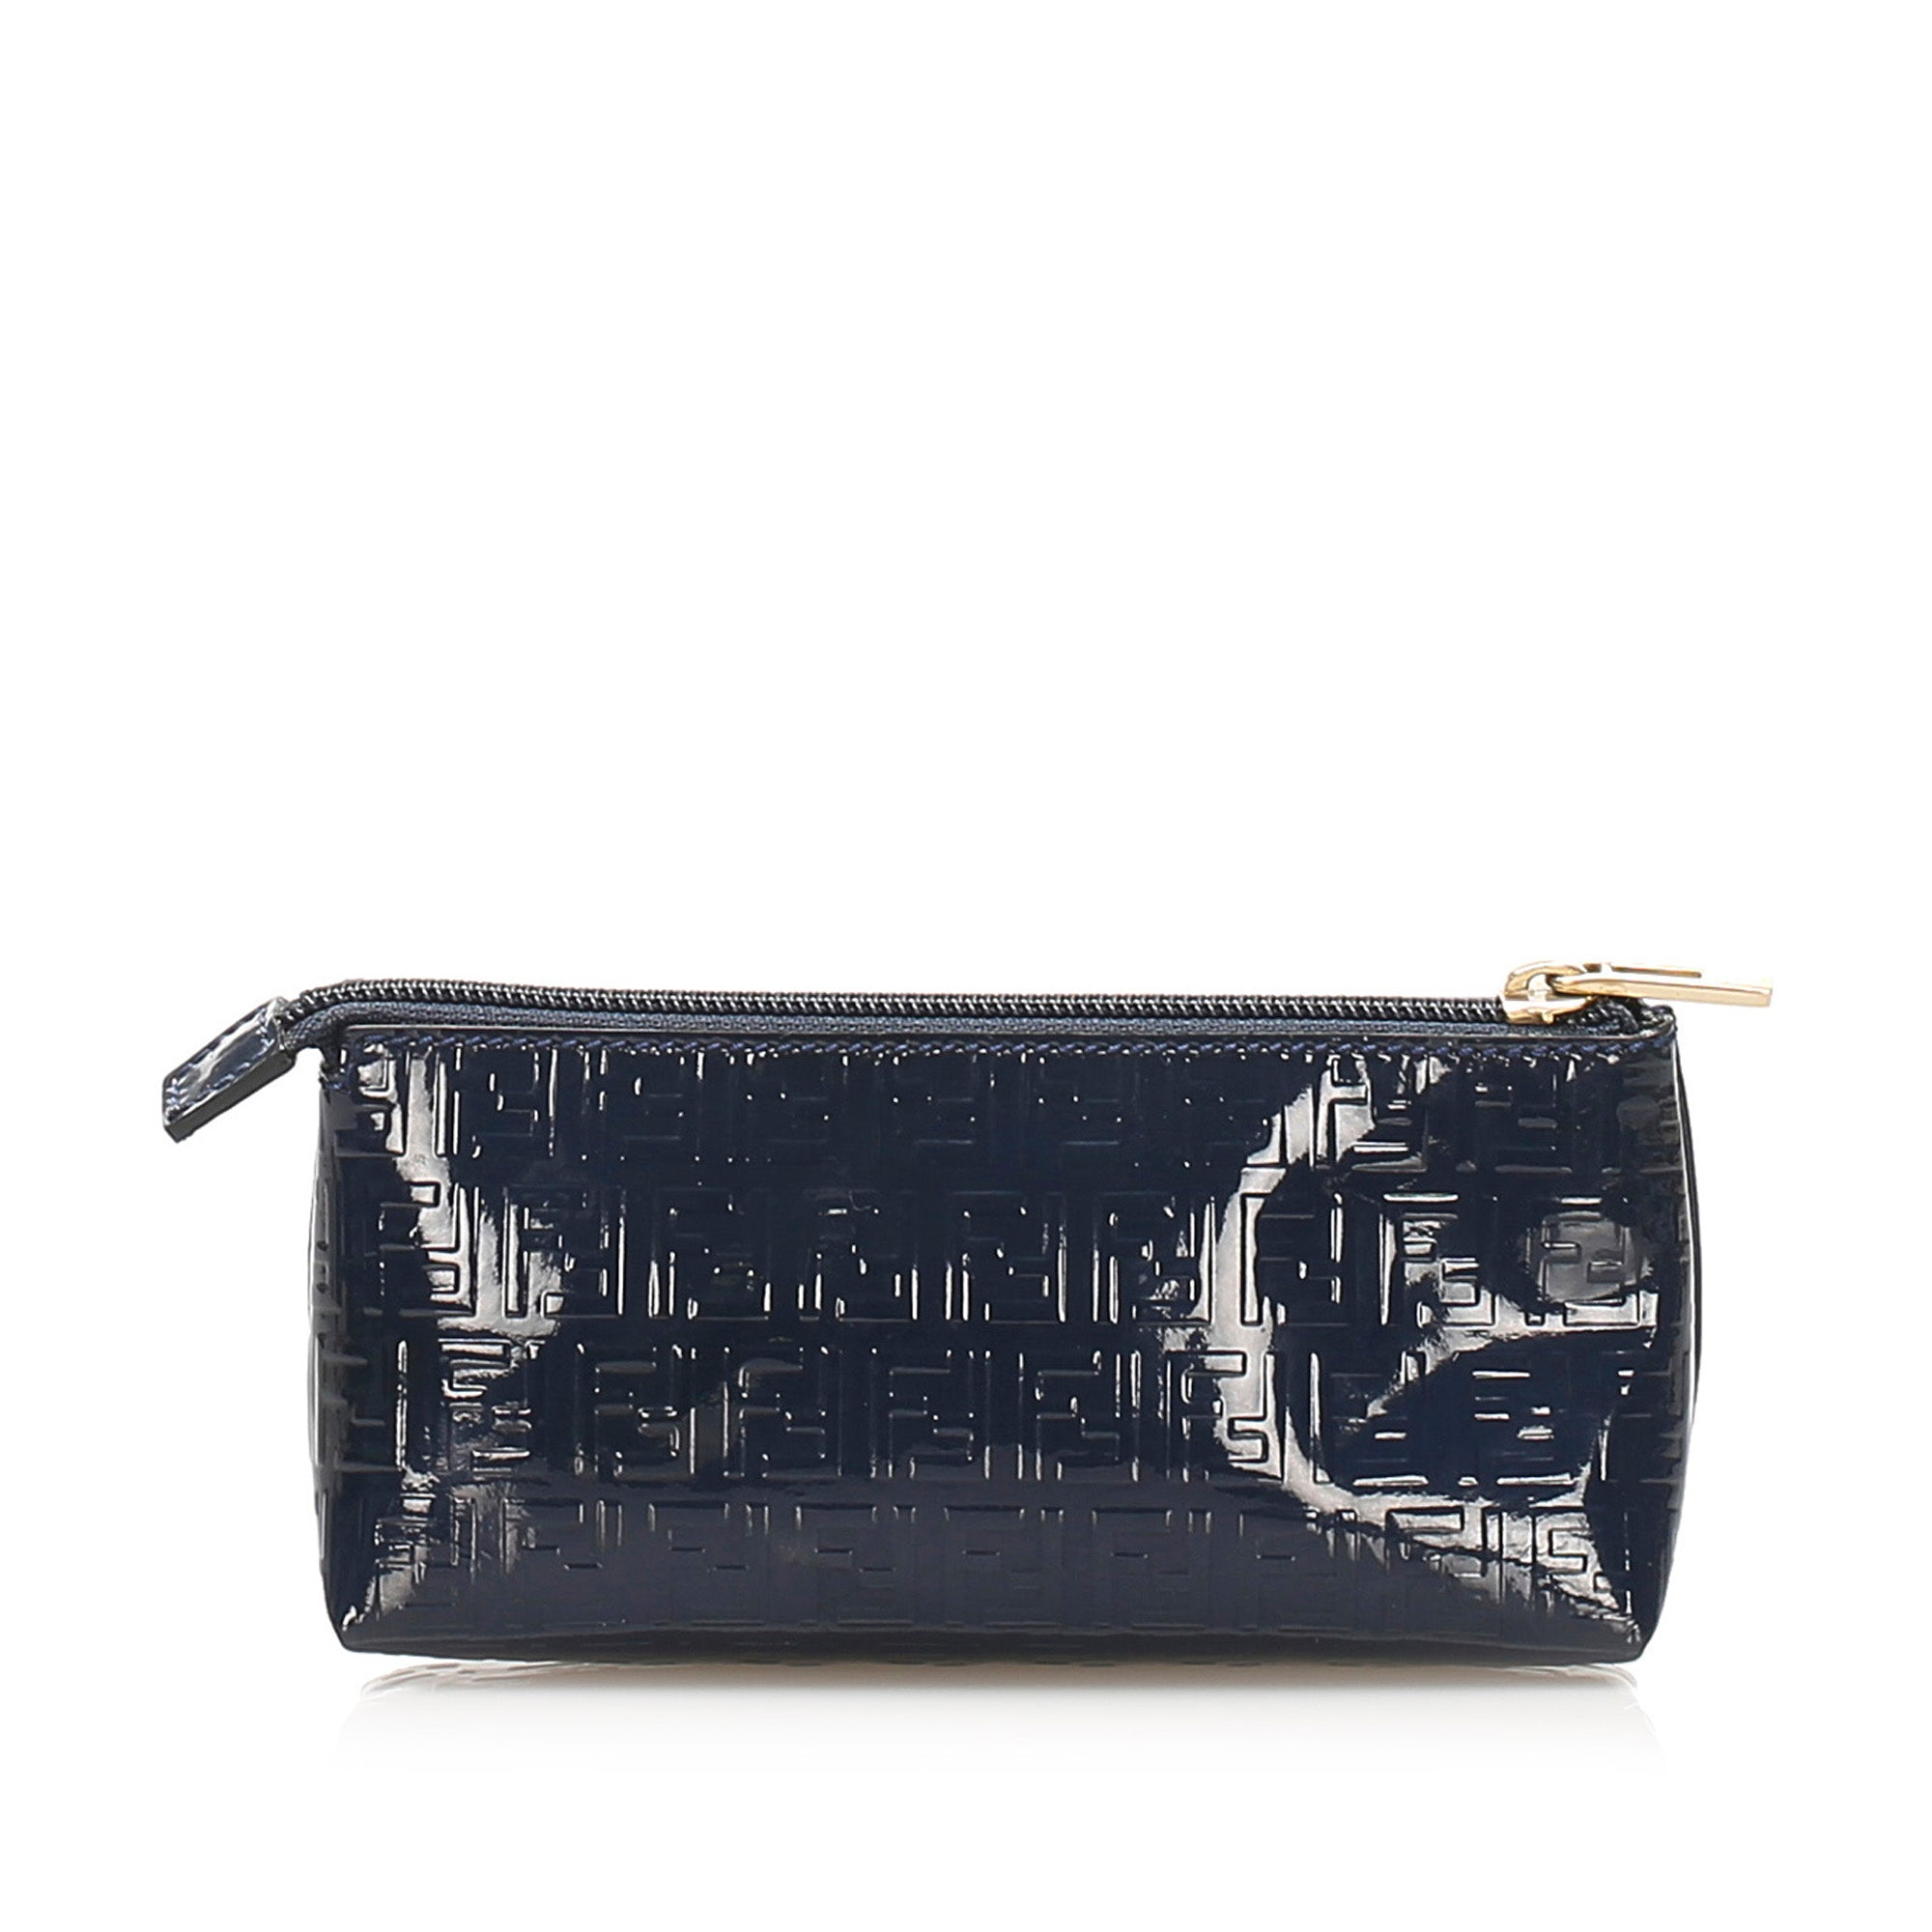 Fendi Blue Zucchino Patent Leather Pouch